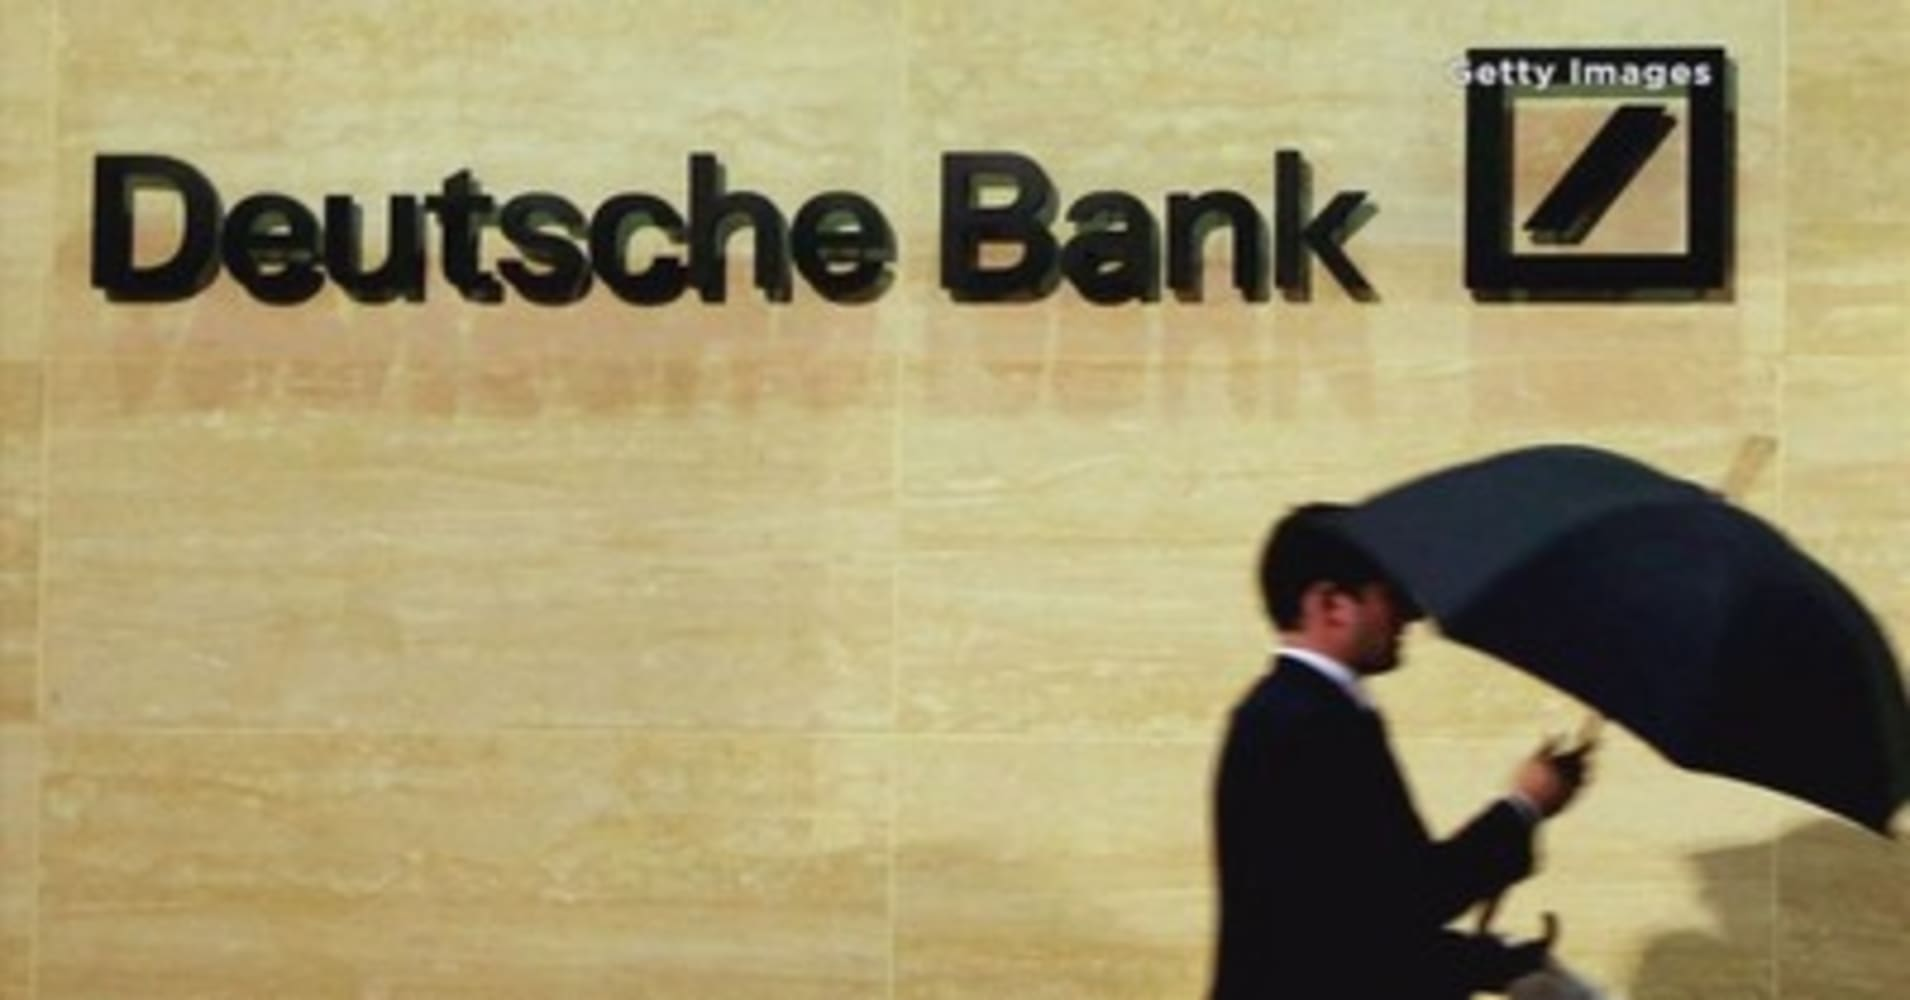 Deutsche Bank shifts large part of euro clearing to Frankfurt from London